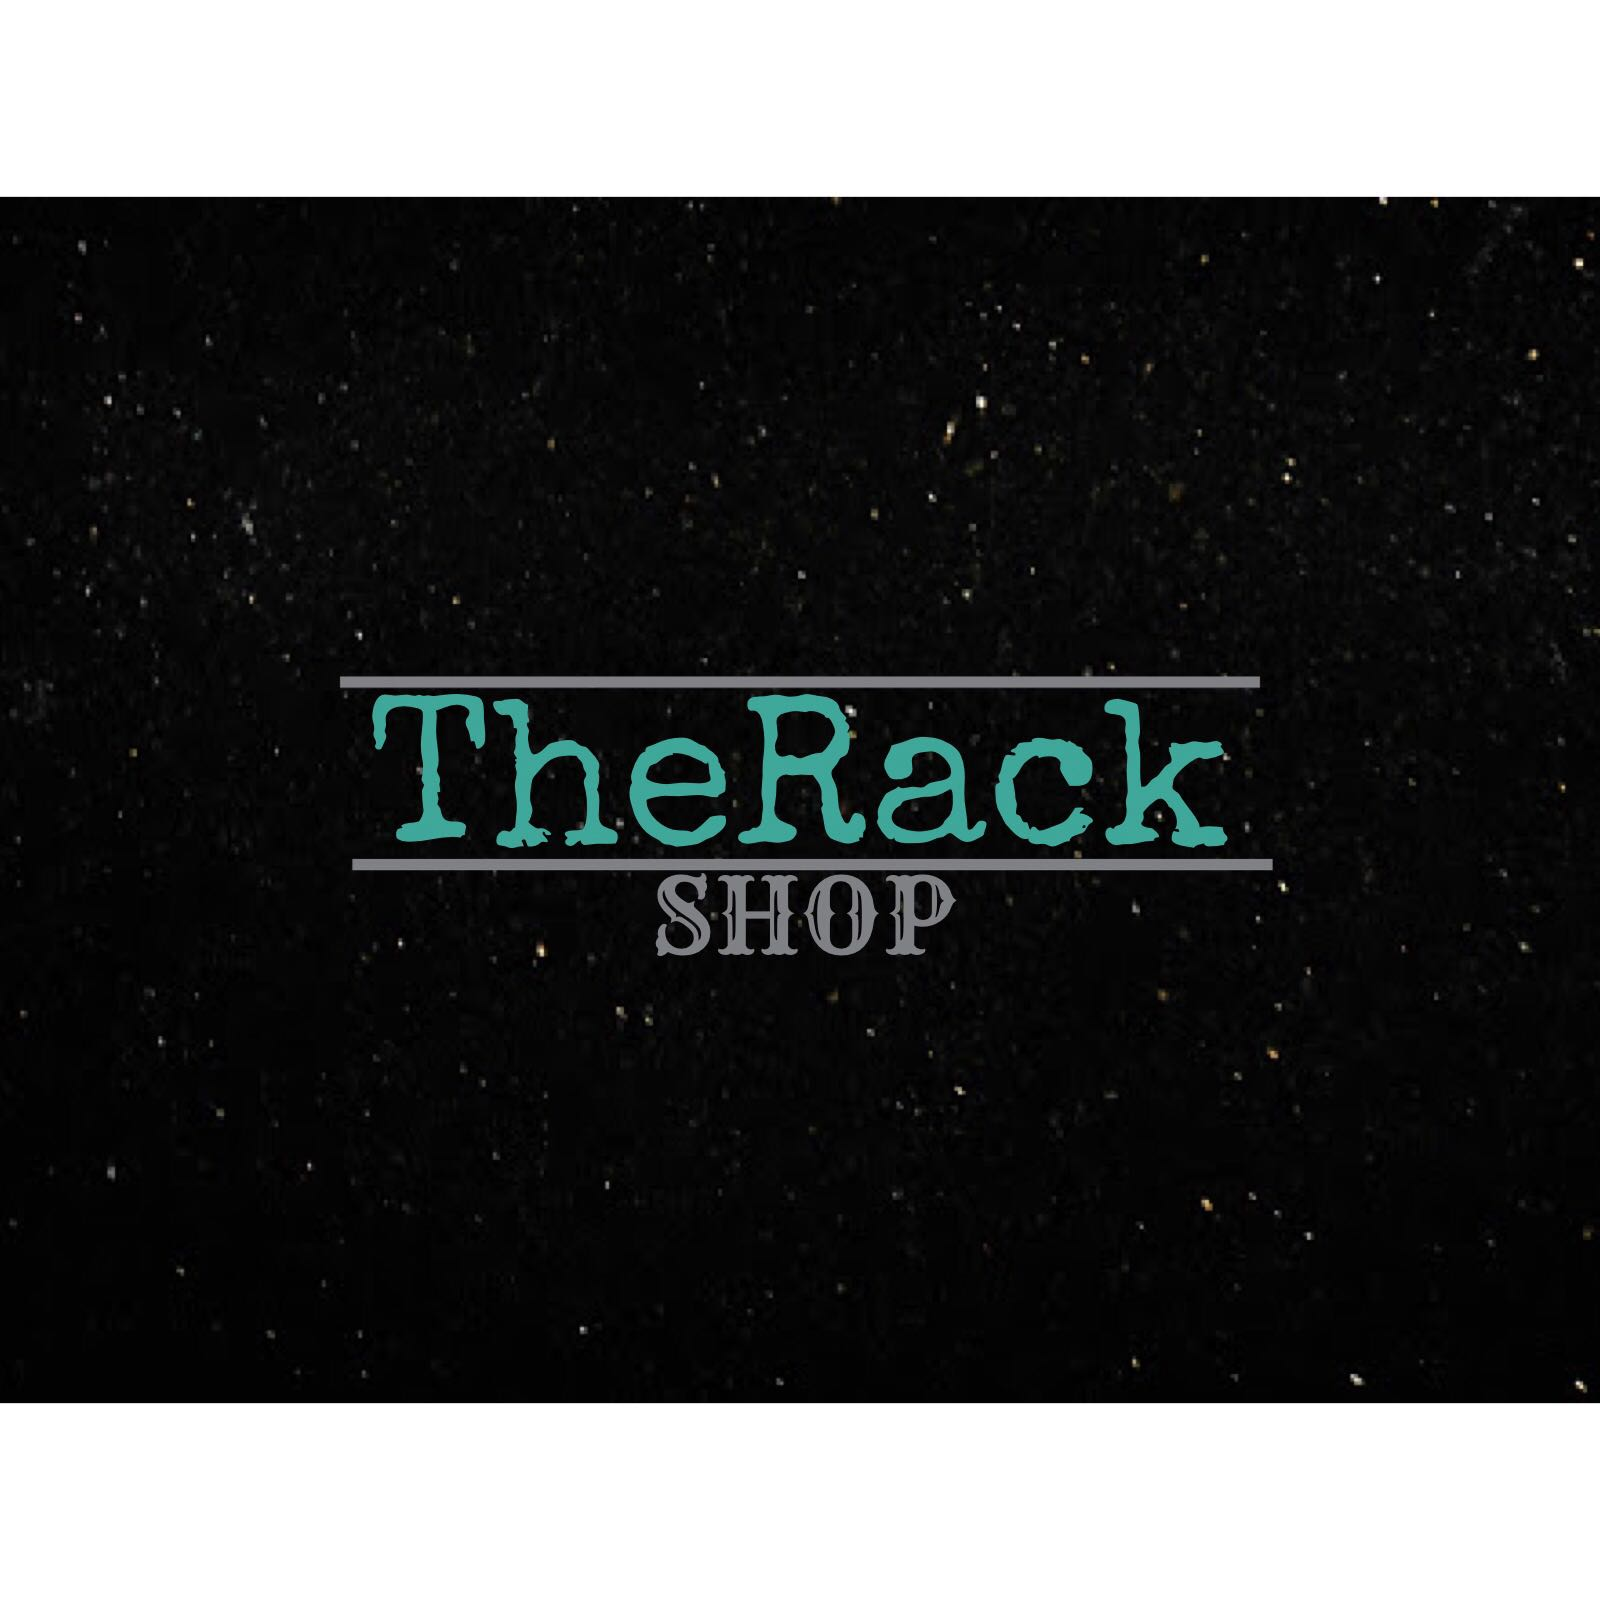 therack_shop